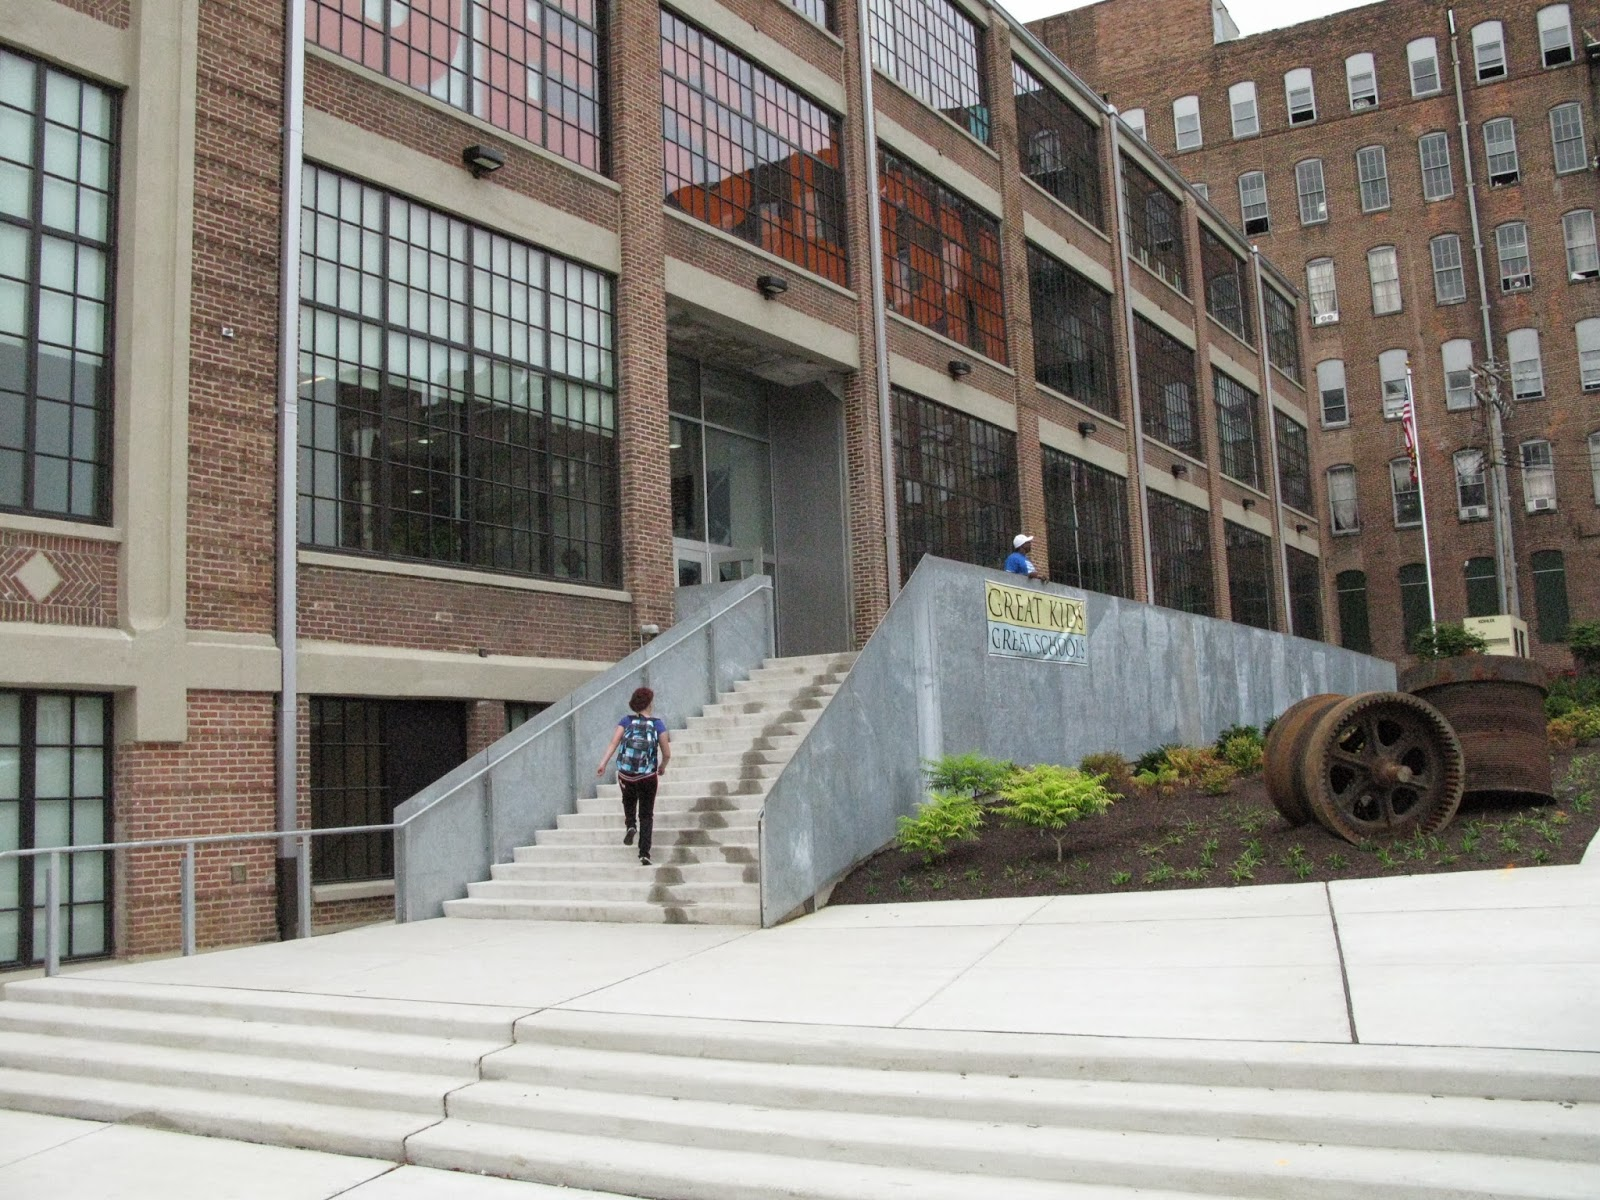 Superieur Even Outside Stairs Make A Reappearance As Long As An Equally Direct  Accessible Route Leads To The Same Entrance. Design School, Baltimore,  Architect: Ziger ...